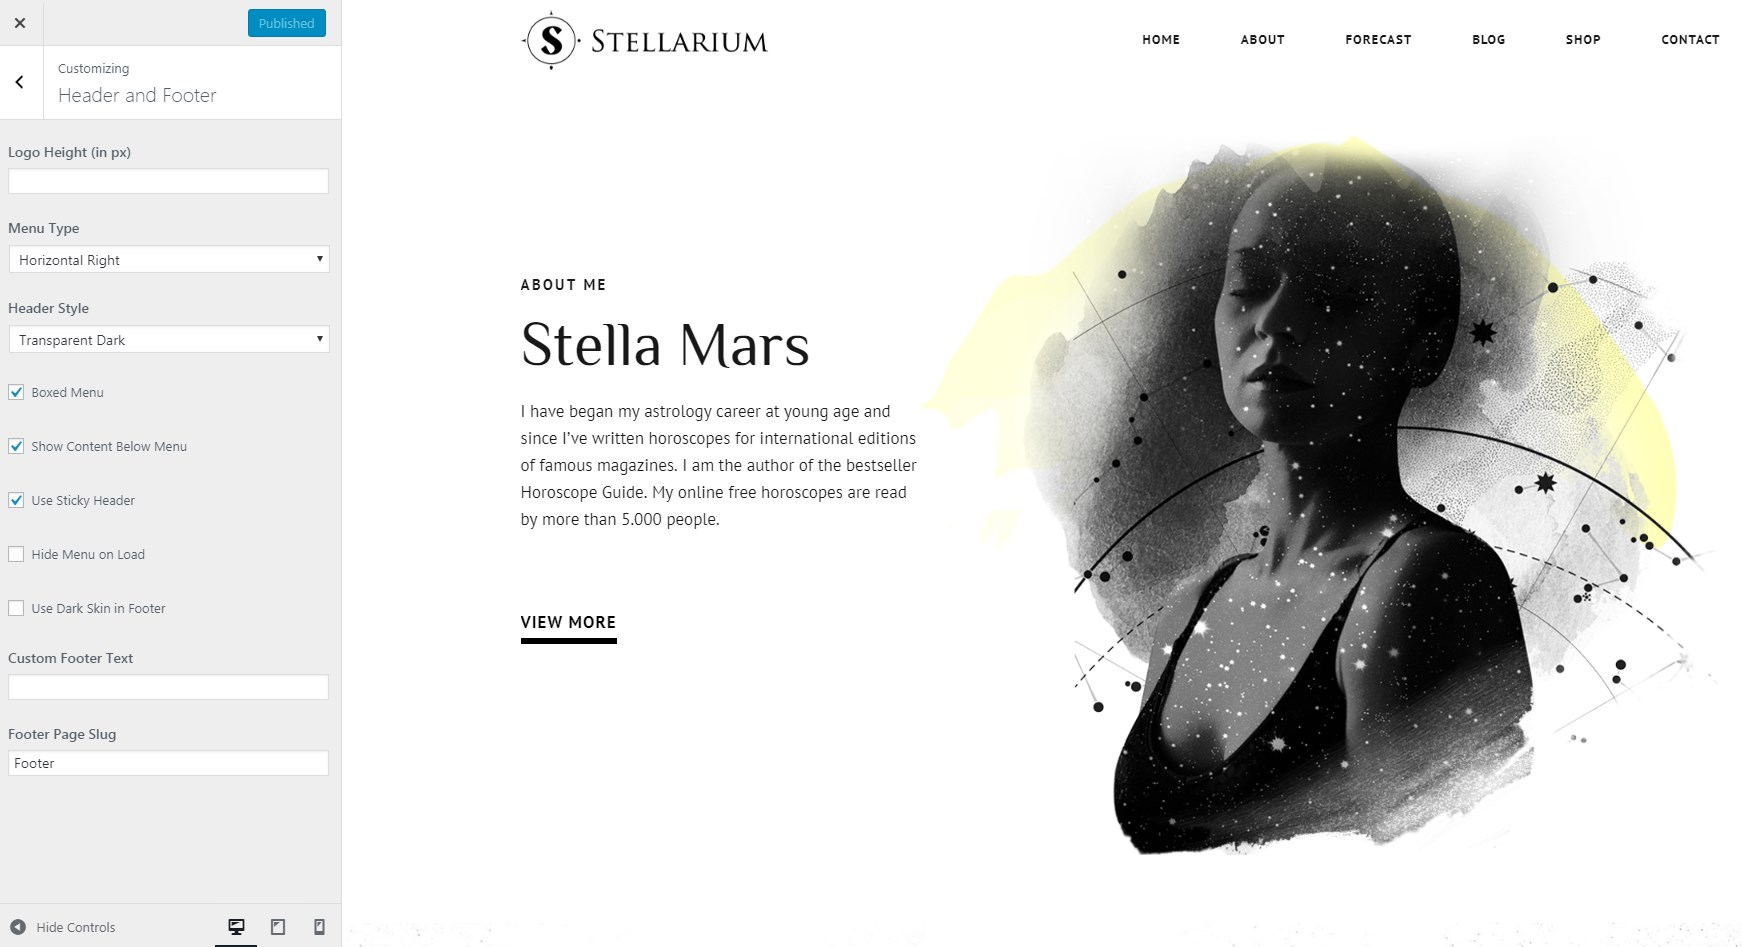 http://documentation.bold-themes.com/stellarium/wp-content/uploads/sites/34/2018/06/stellarium-customize-05.jpg